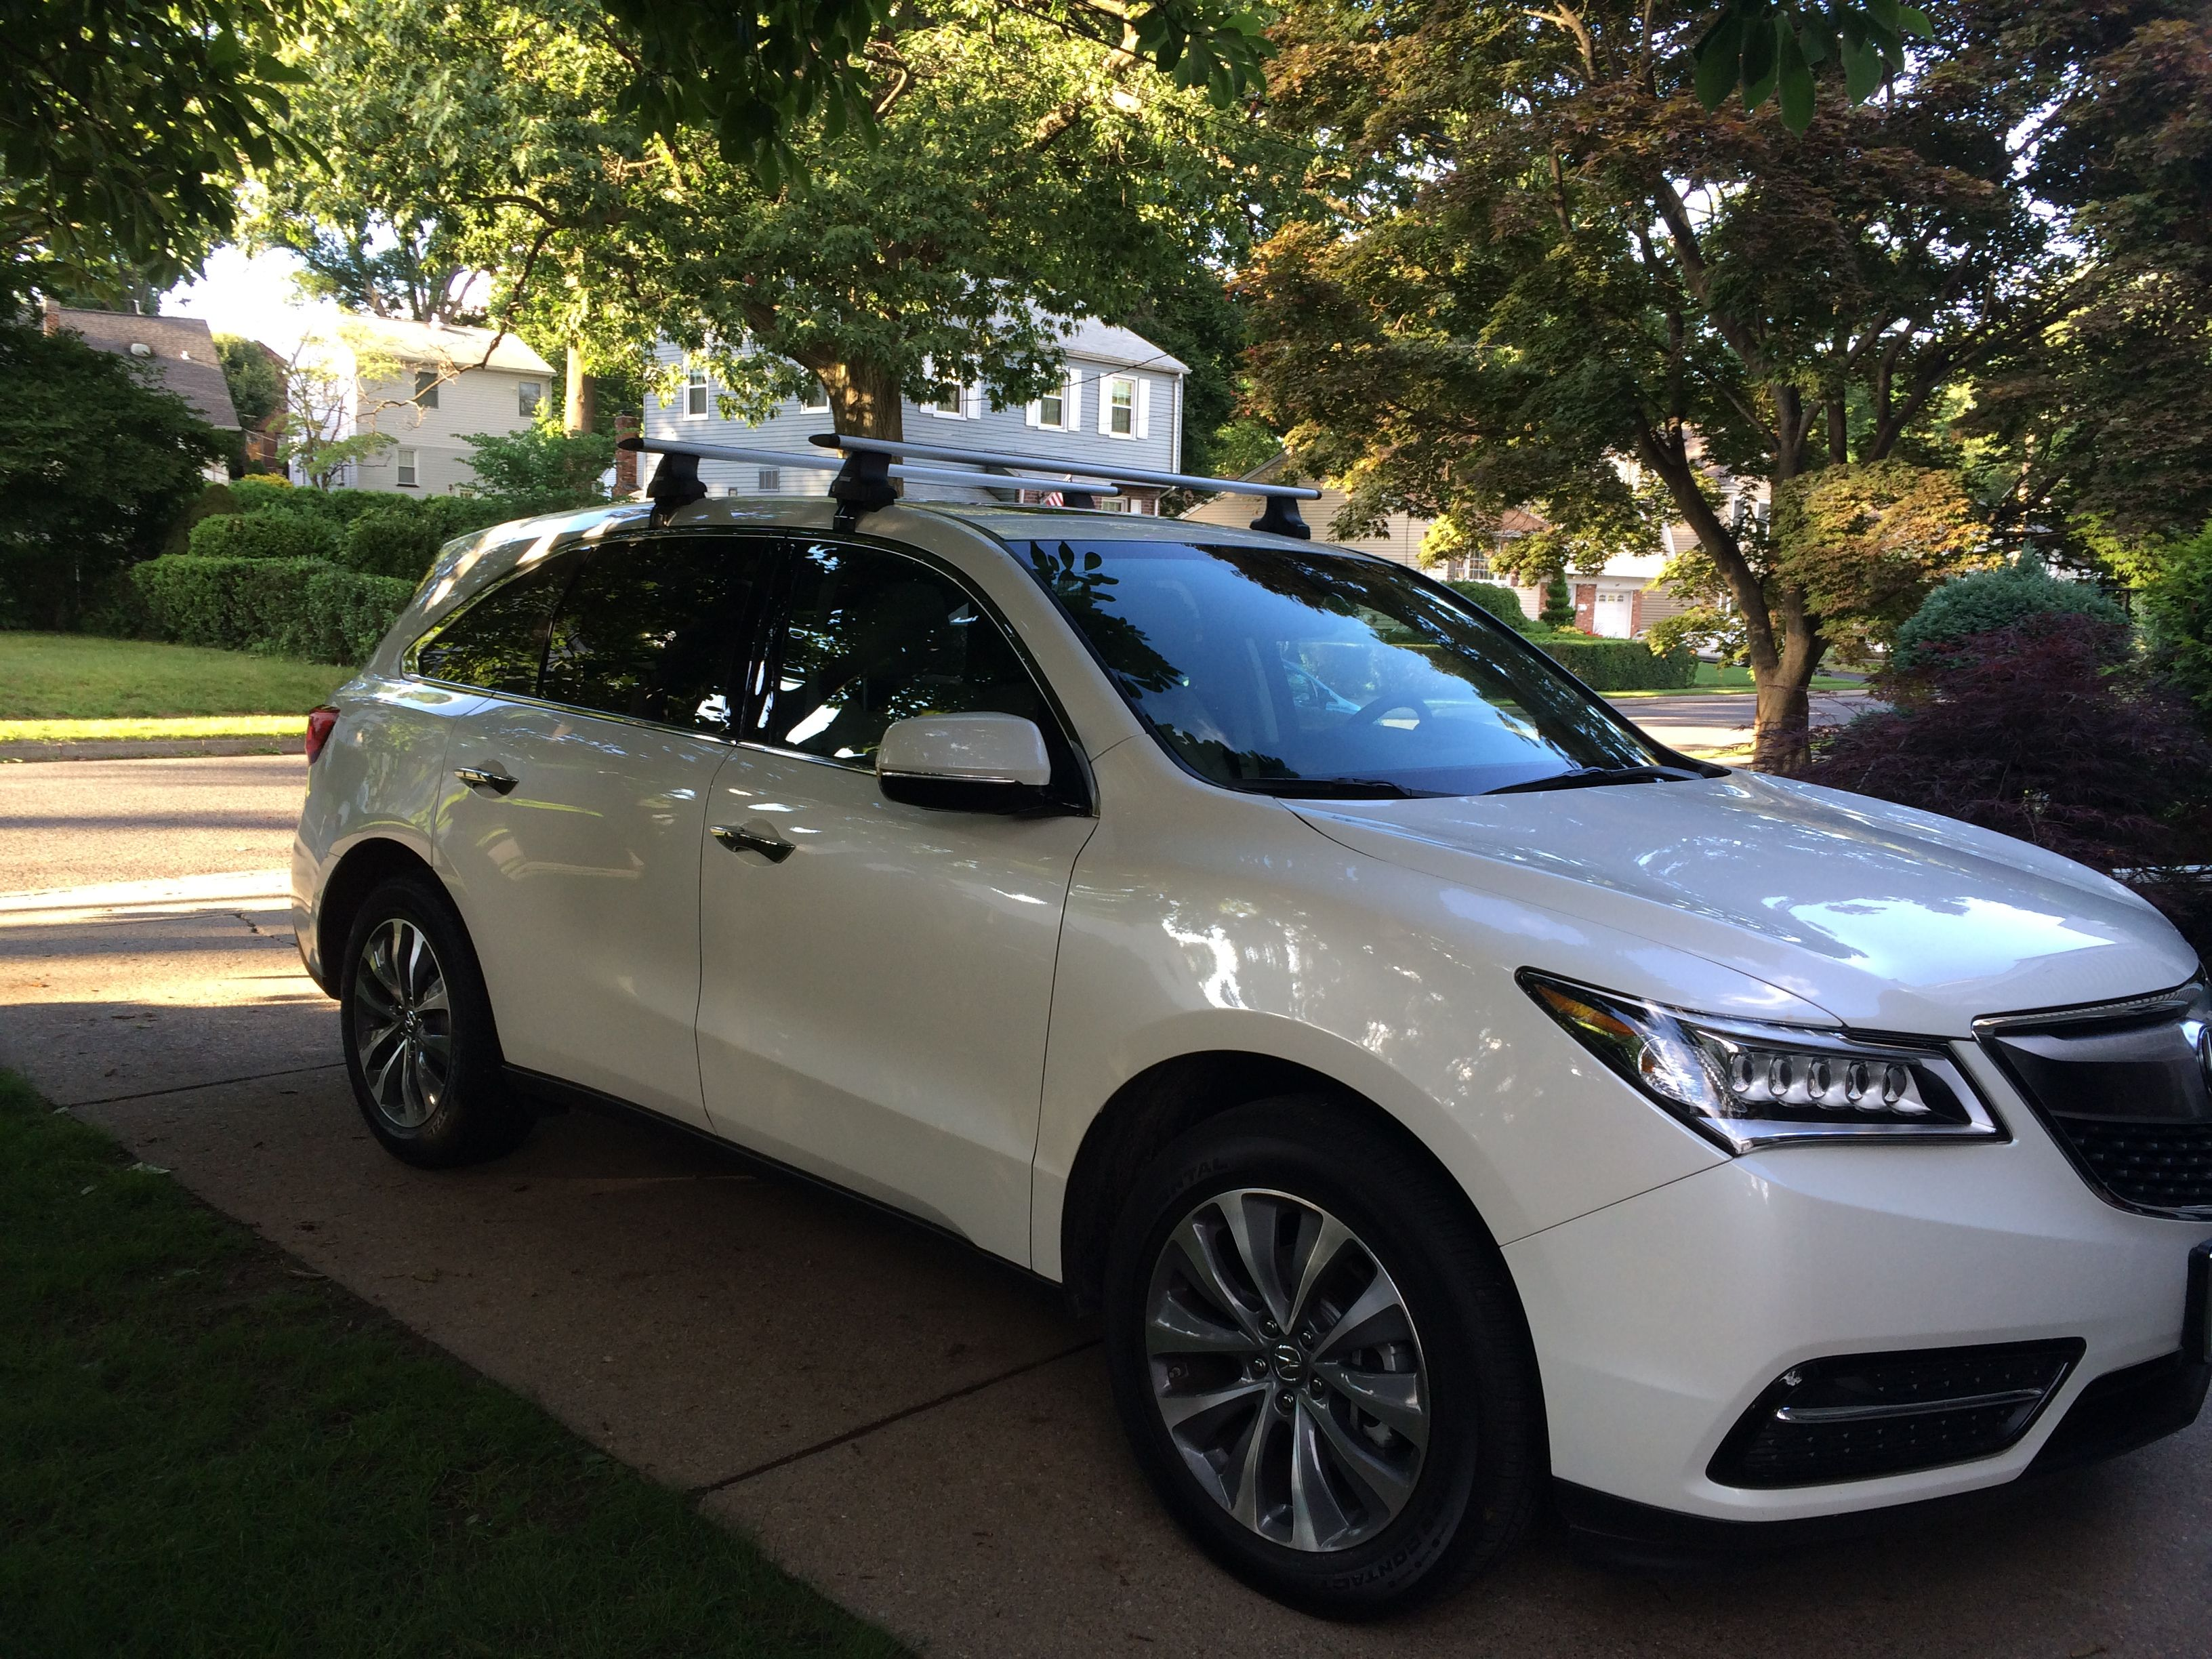 Acura Mdx Roof Rack Google Search Beer Recipes Pinterest - Acura mdx roof rails